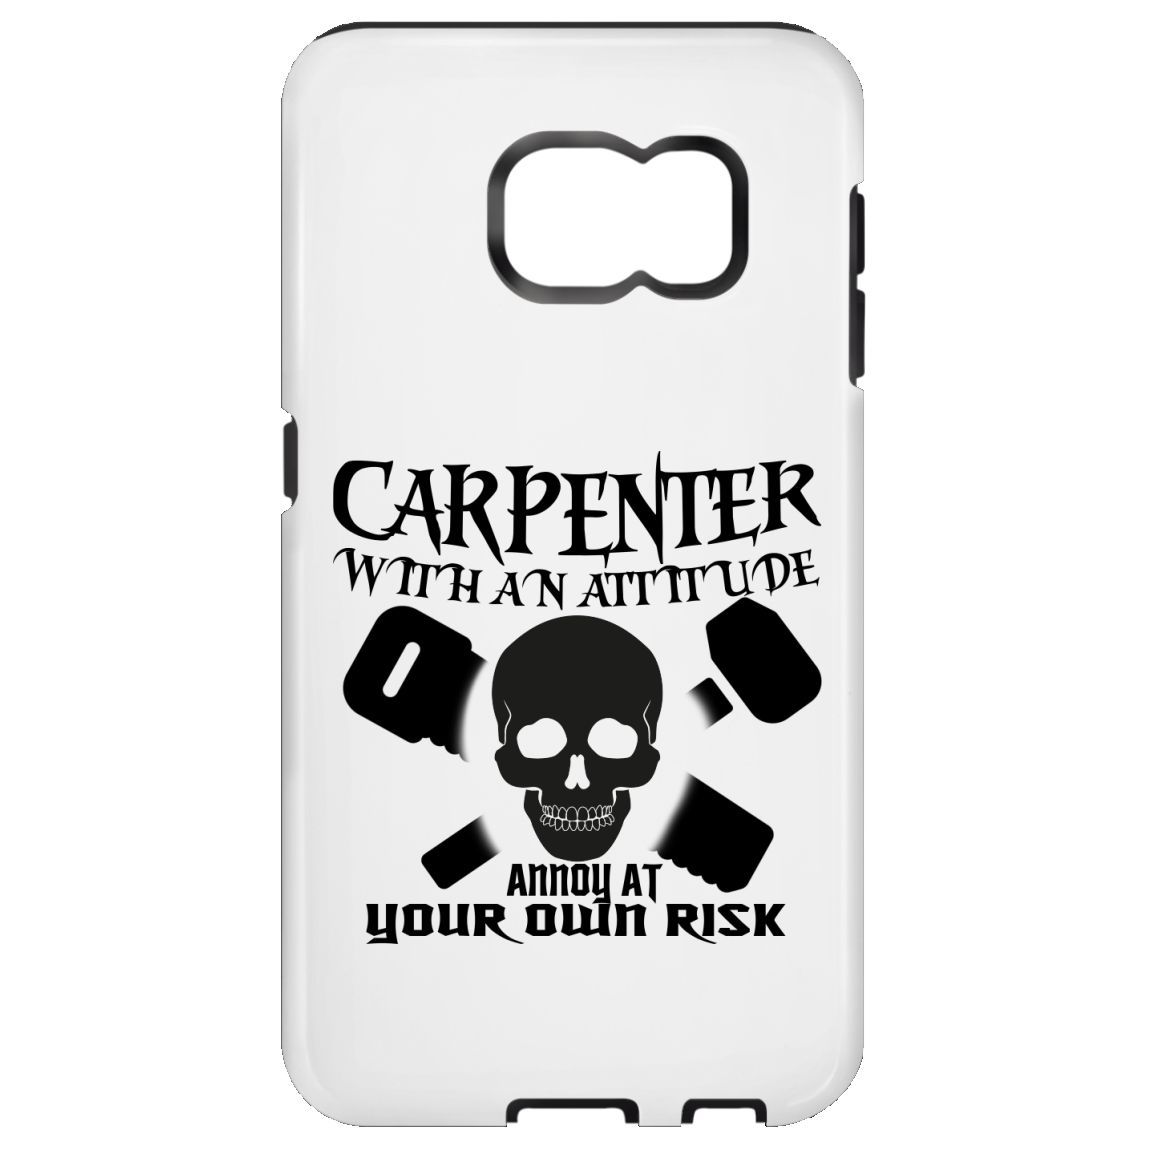 Carpenter With An Attitude Annoy At Your Own Risk Galaxy S7 Cases